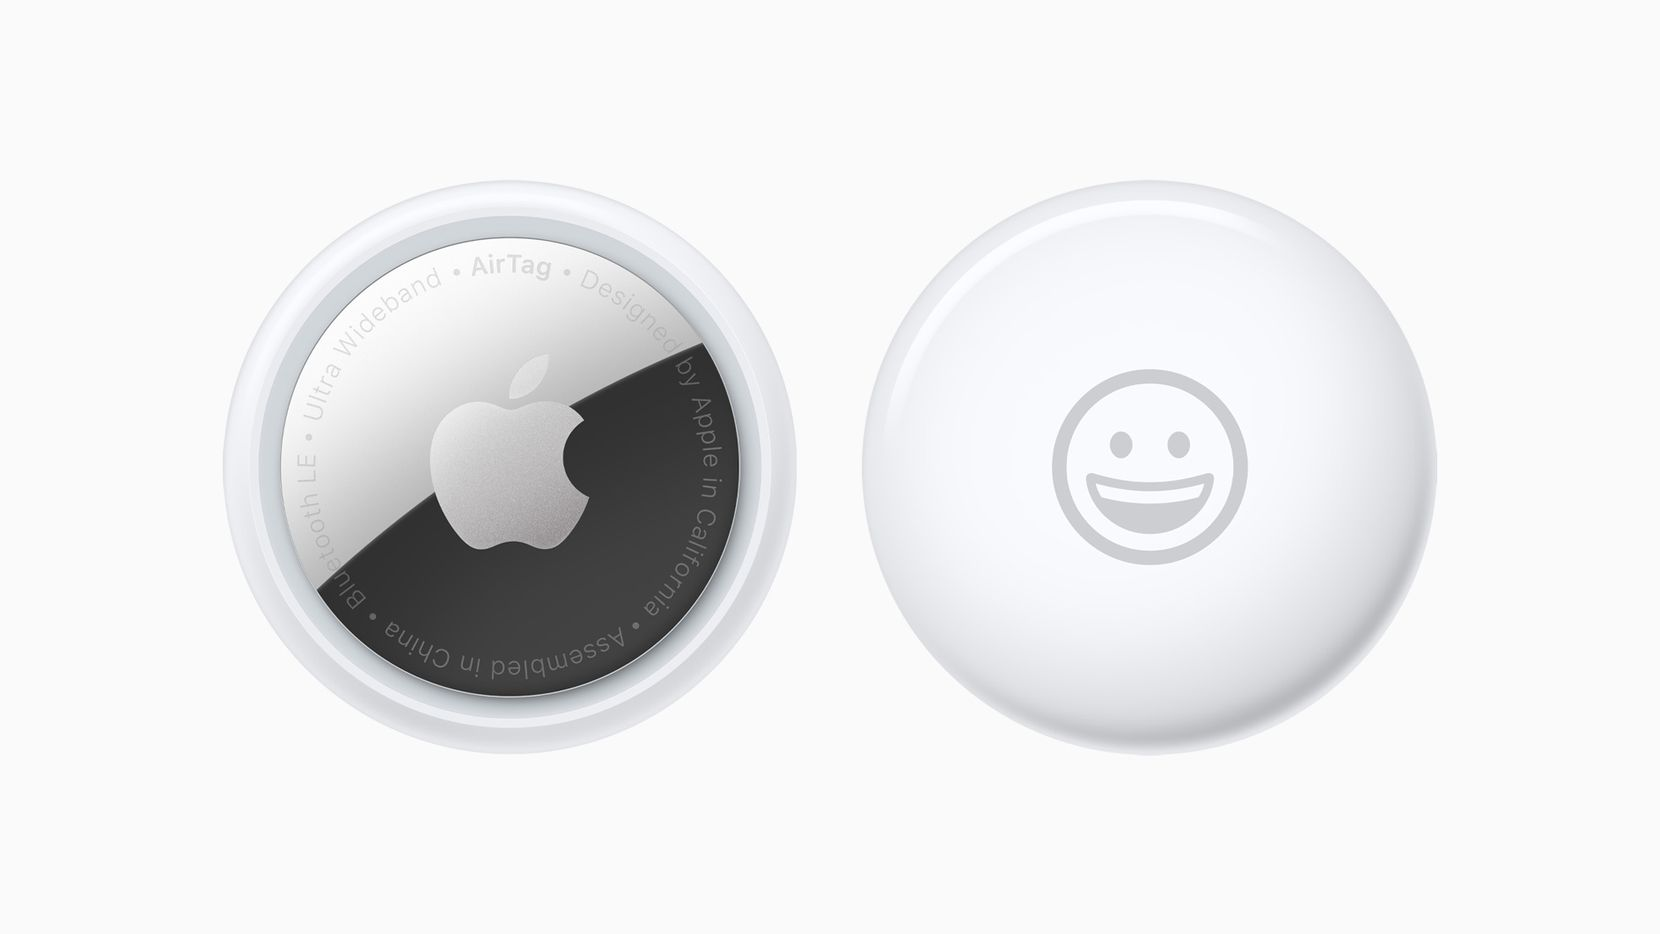 Apple's AirTag can be personalized with an emoji or even your name, if it's short.